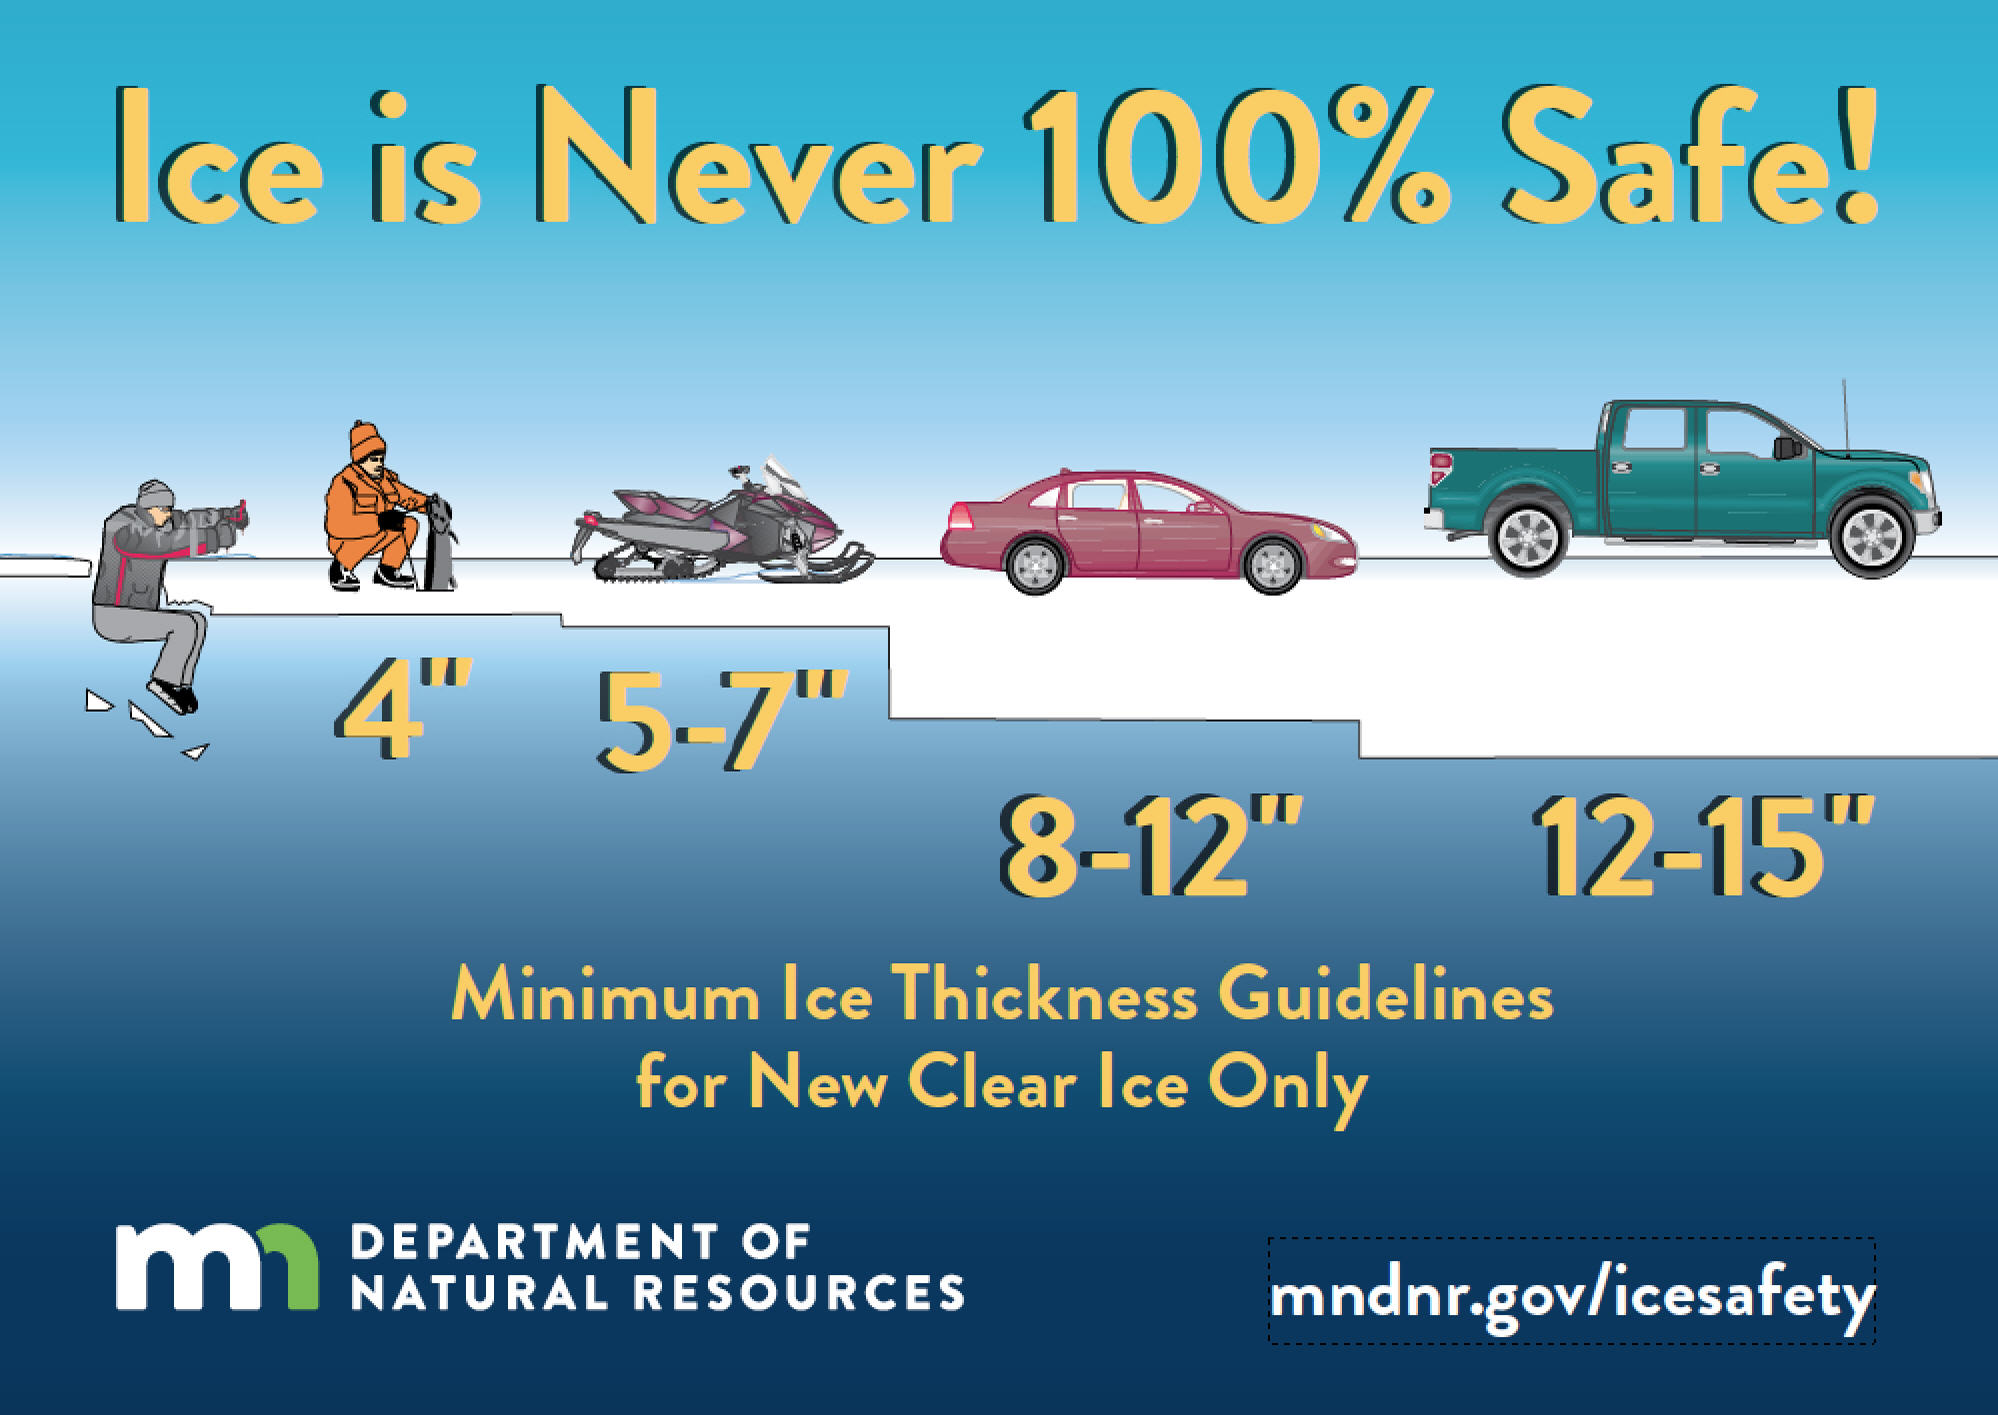 Ice thickness guidelines for new clear ice only from Minnesota Department of Natural Resources